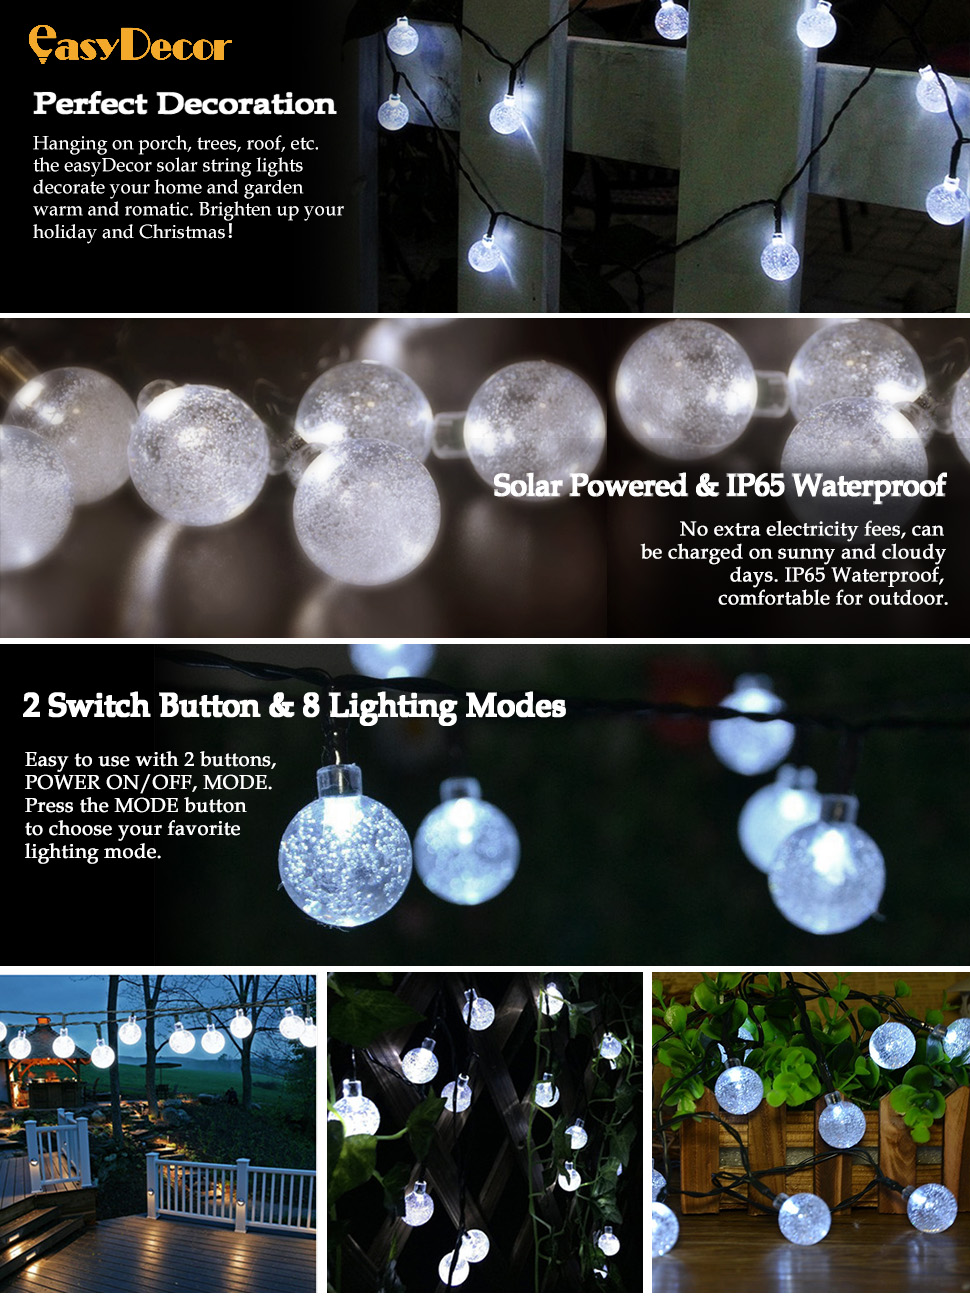 Amazon easydecor globe solar string lights 30 led 21ft 8 mode ip65 waterproof perfect for outdoor and indoor use 2lar powered led light strings no utility energy costs 3tomatically working the string lights workwithnaturefo